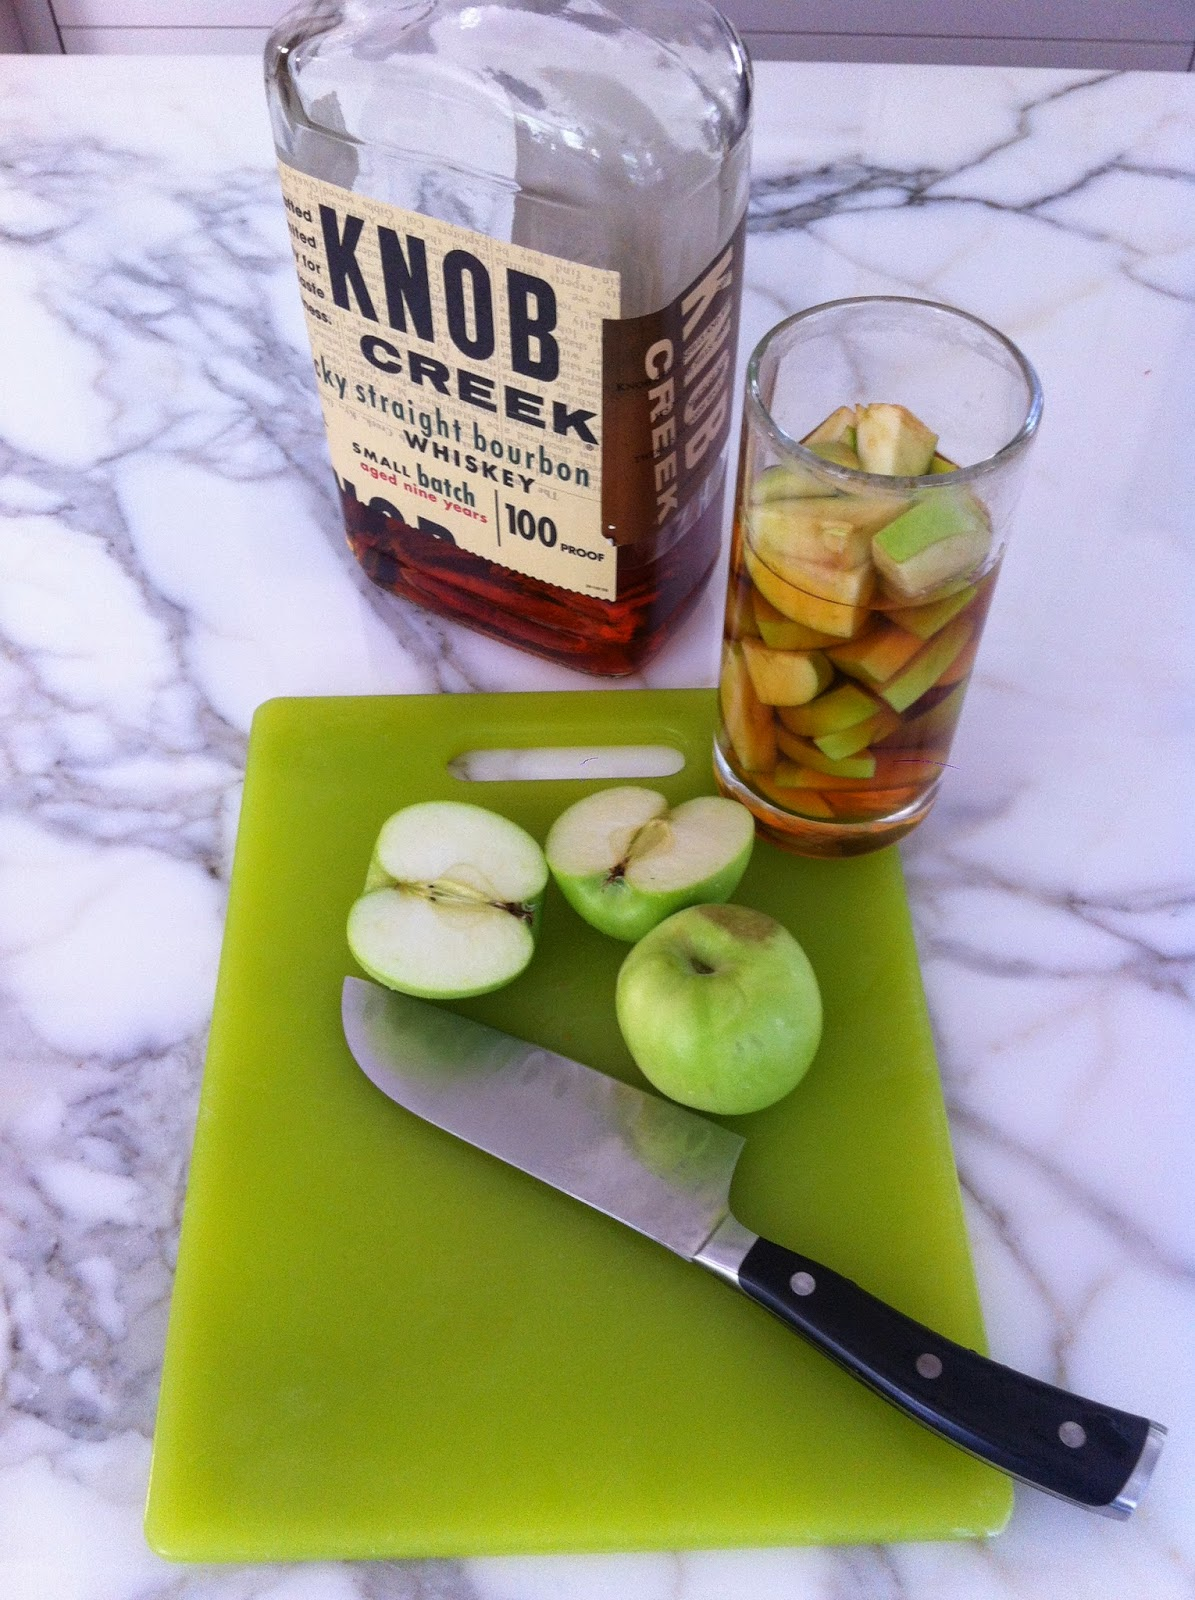 bourbon whisky macerated apples © Verdance Landscape Design